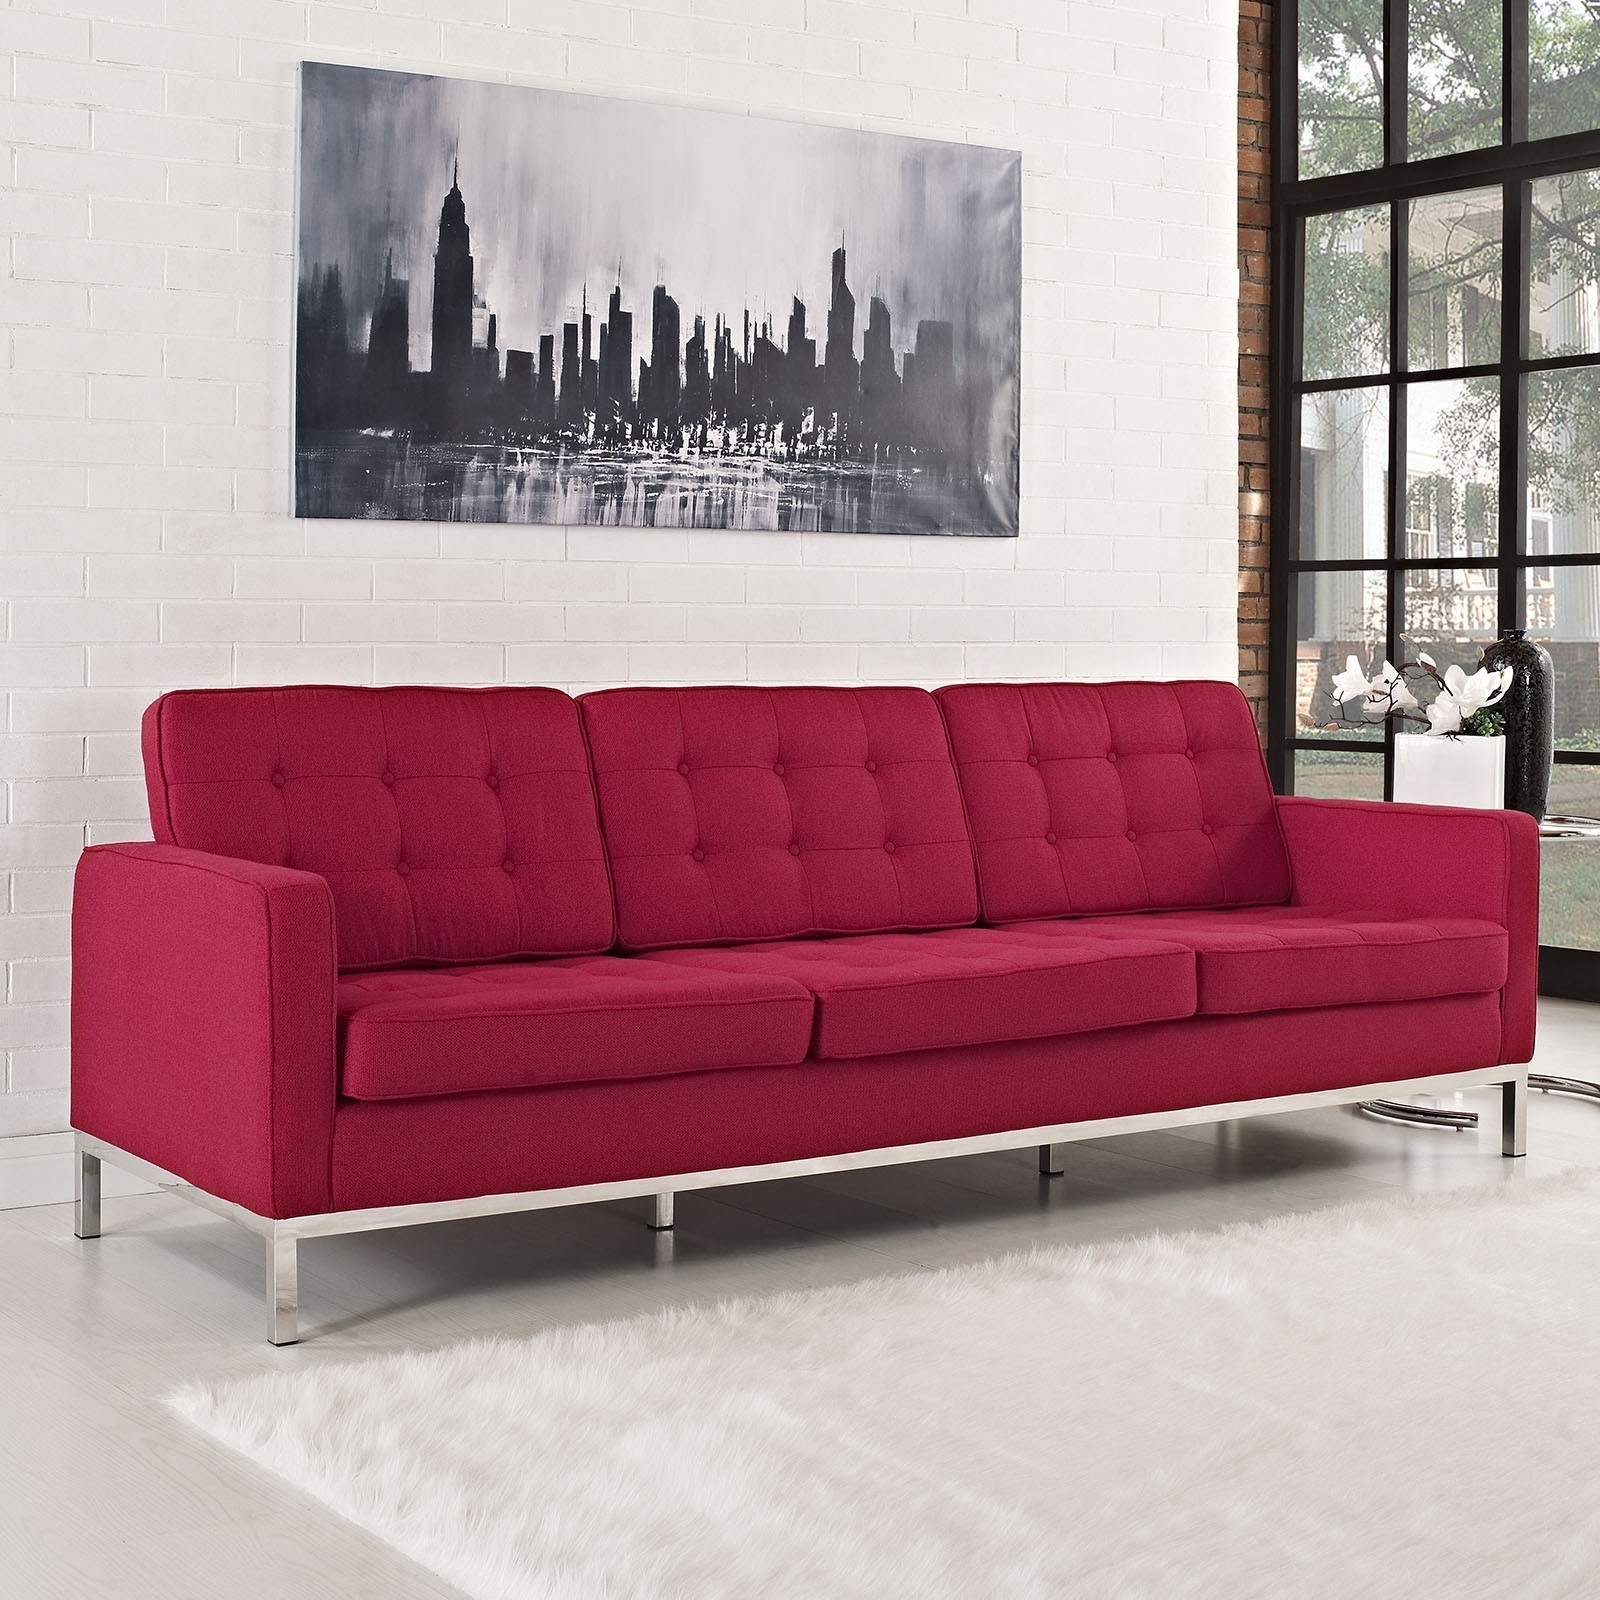 Most Recent Florence Knoll Sofa (View 6 of 20)